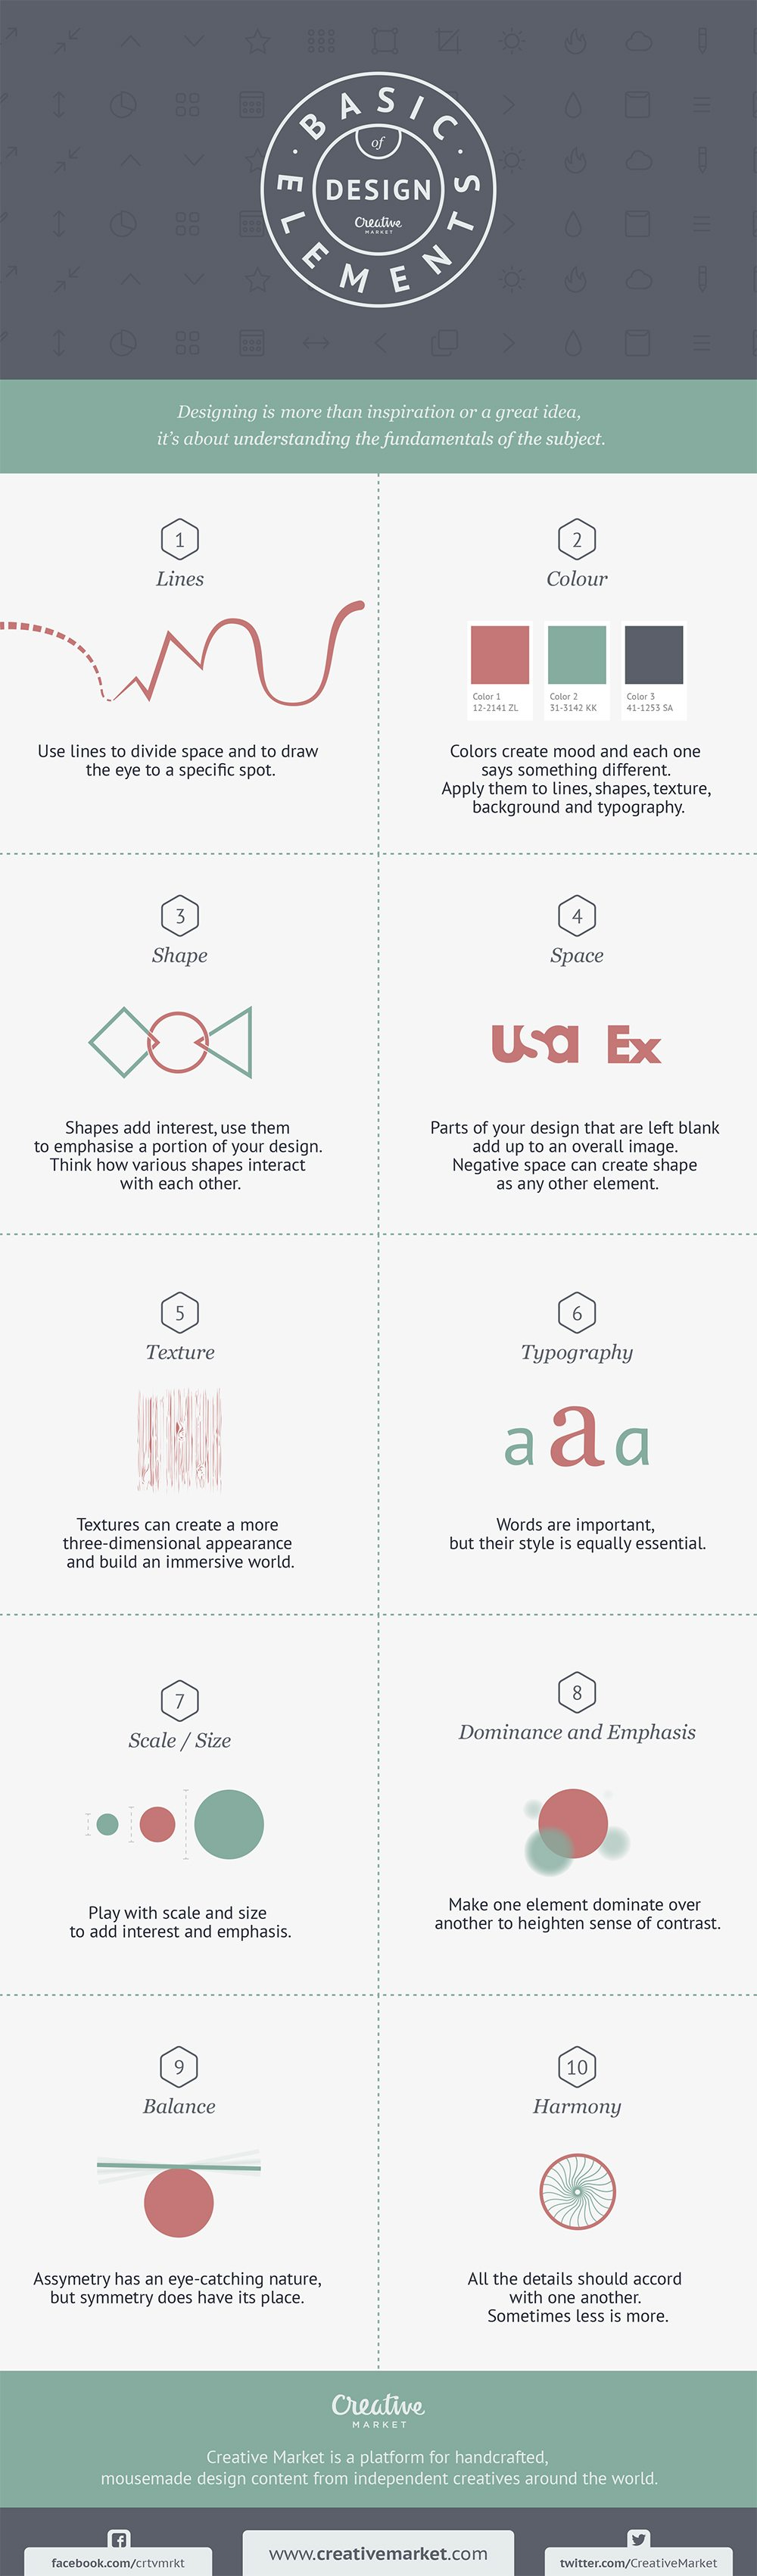 10 elements to improve your website design